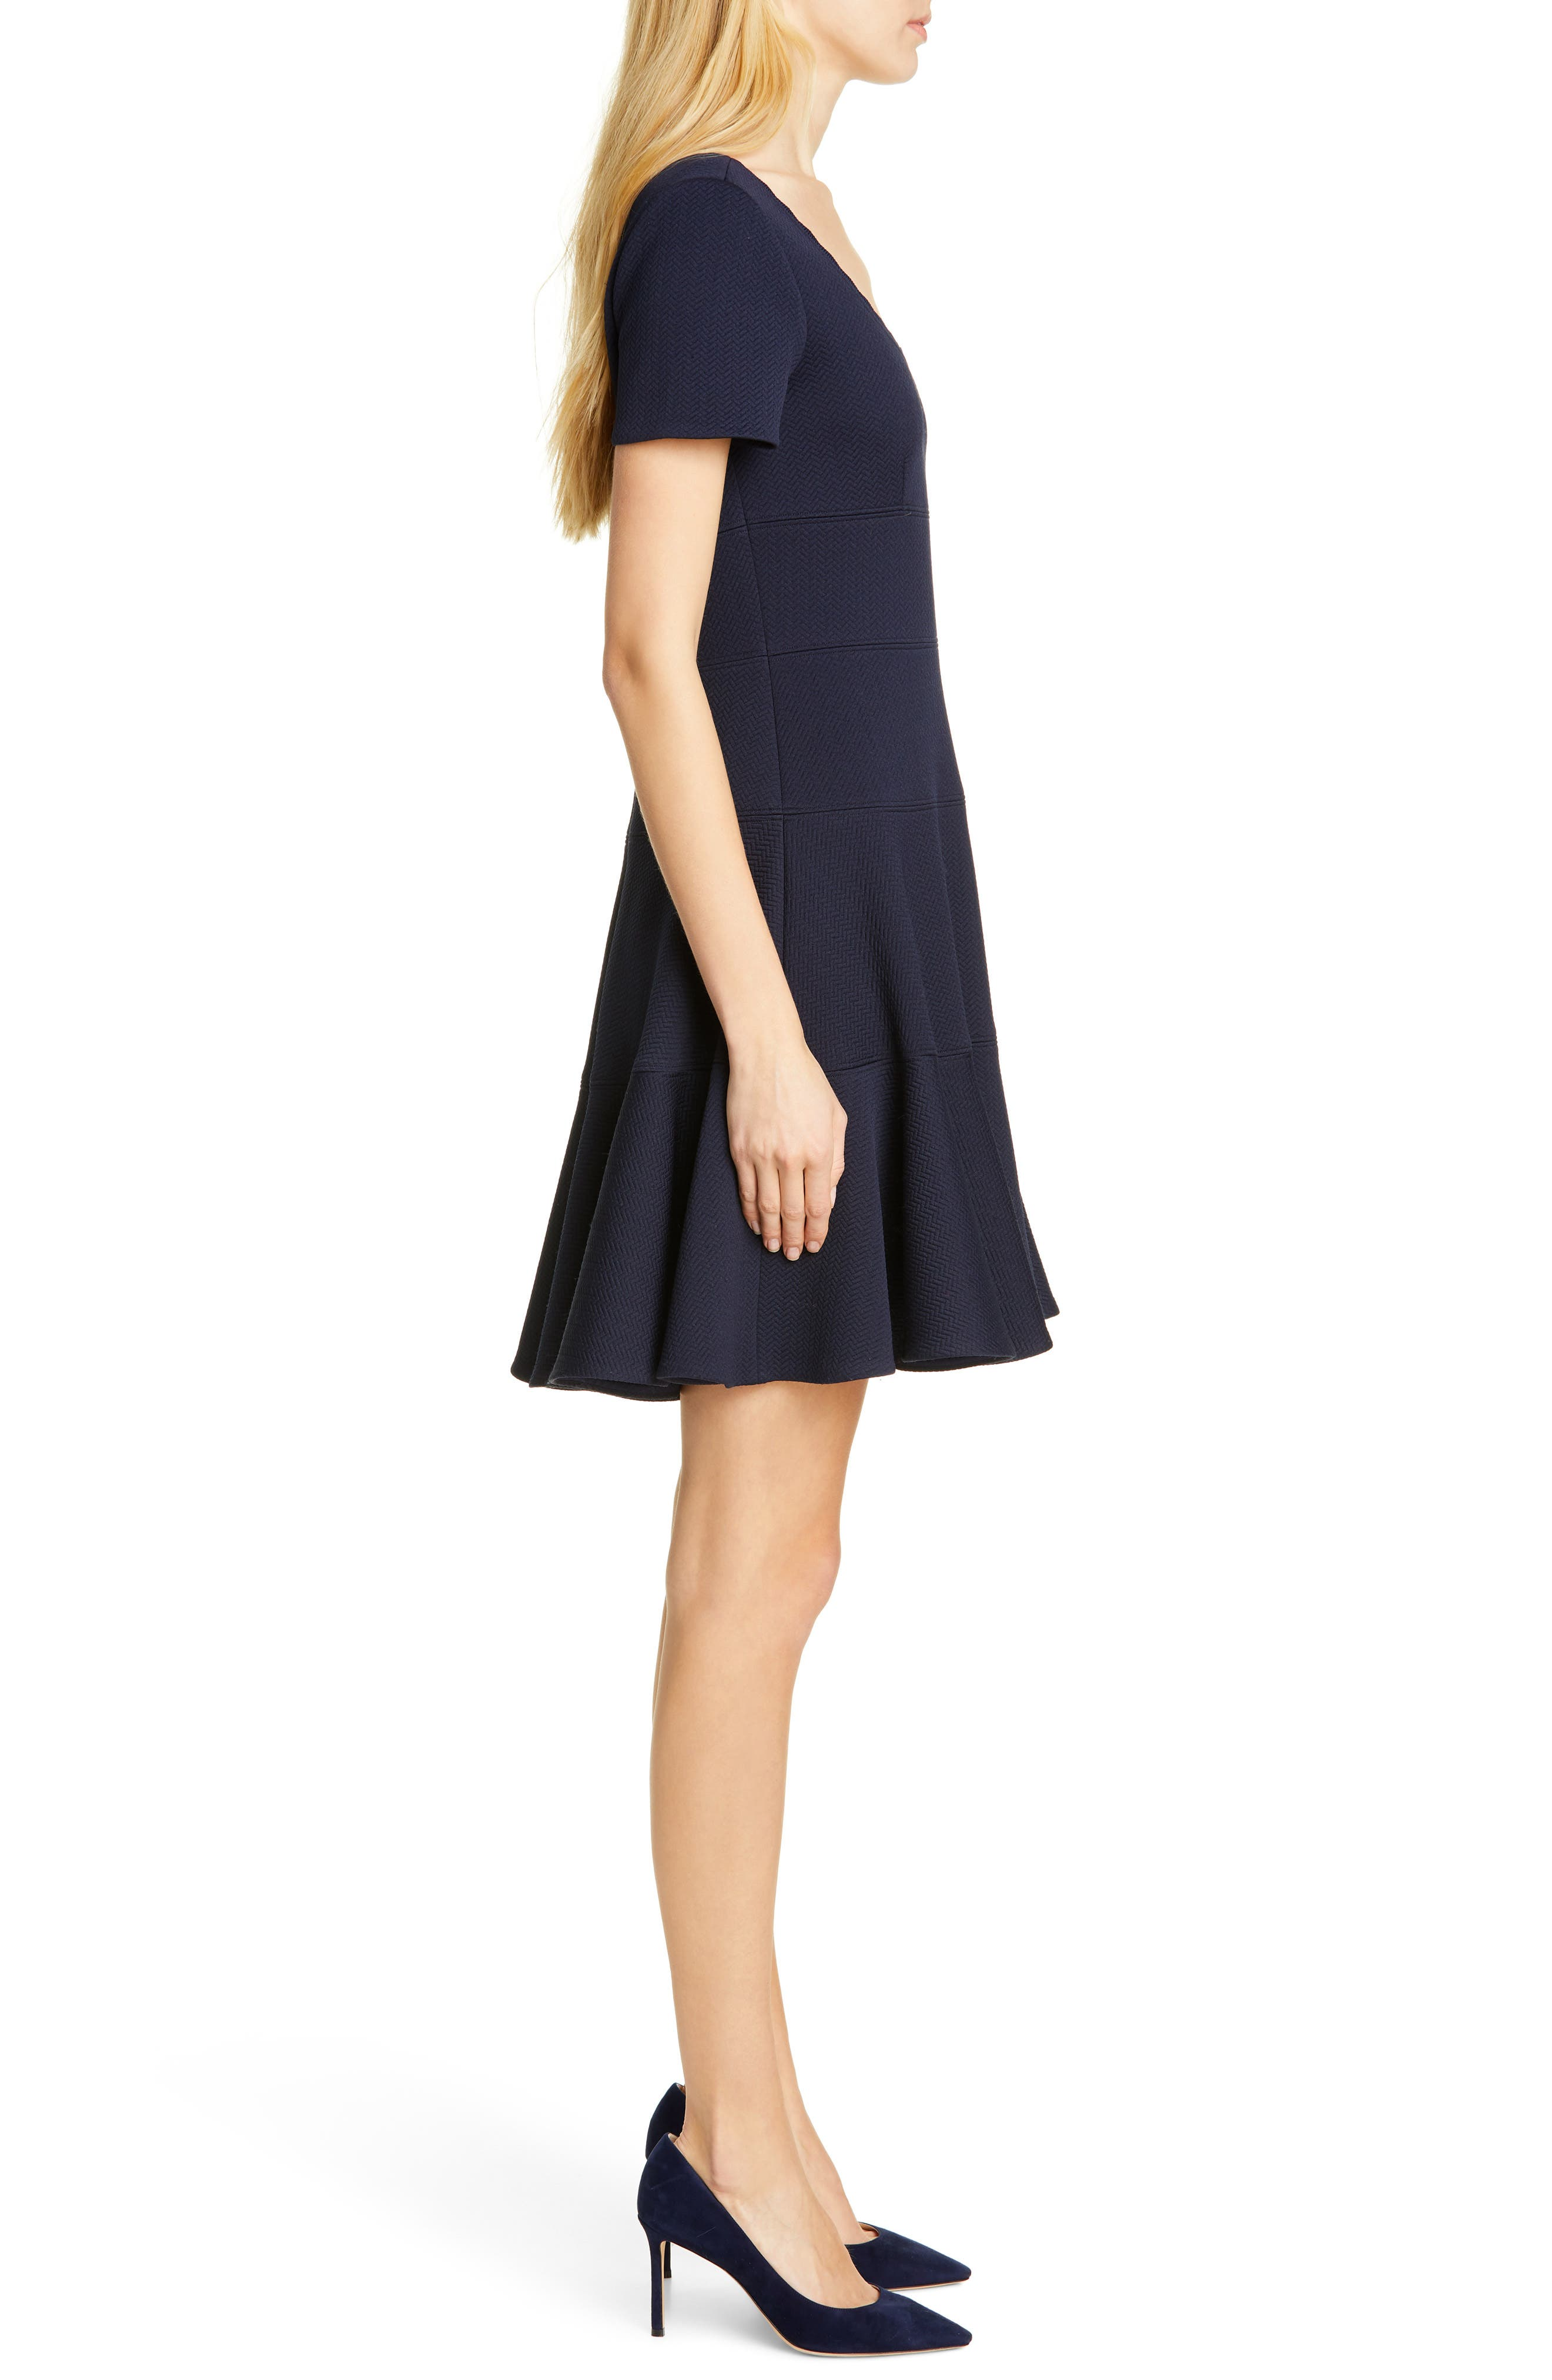 REBECCA TAYLOR, Textured Scallop Detail Fit & Flare Dress, Alternate thumbnail 4, color, NAVY